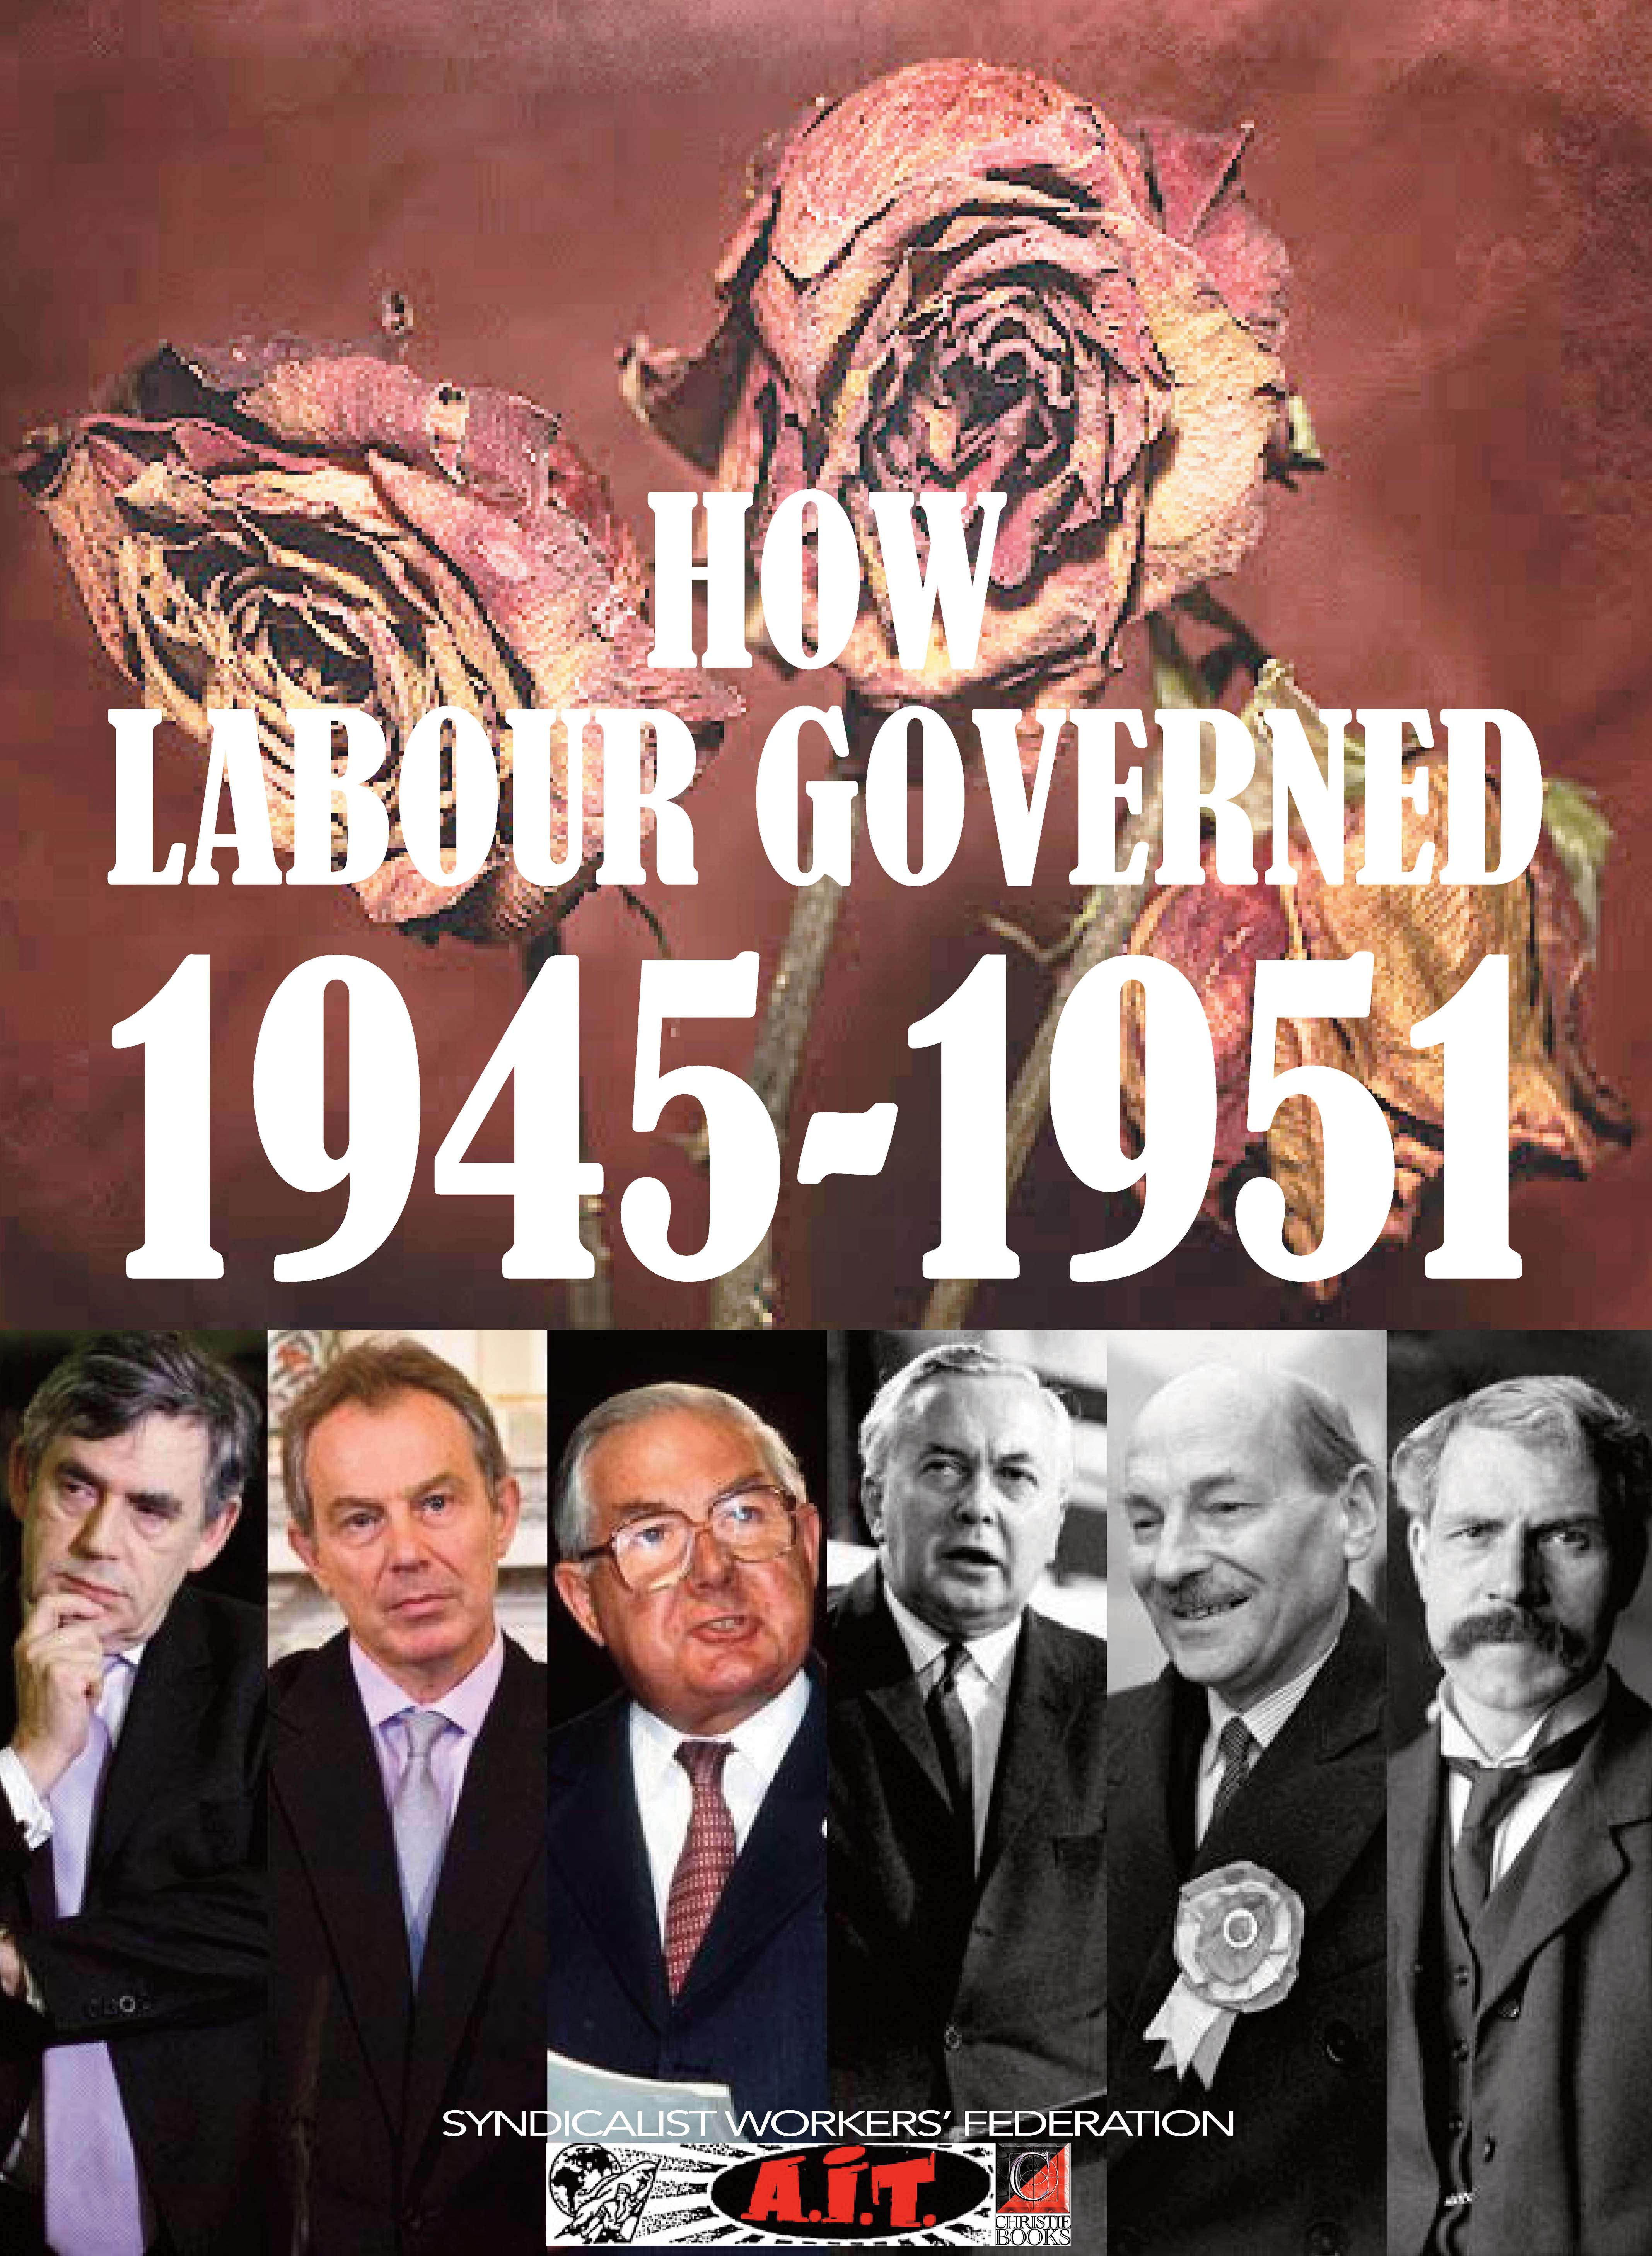 HOW LABOUR GOVERNED 1945-1951